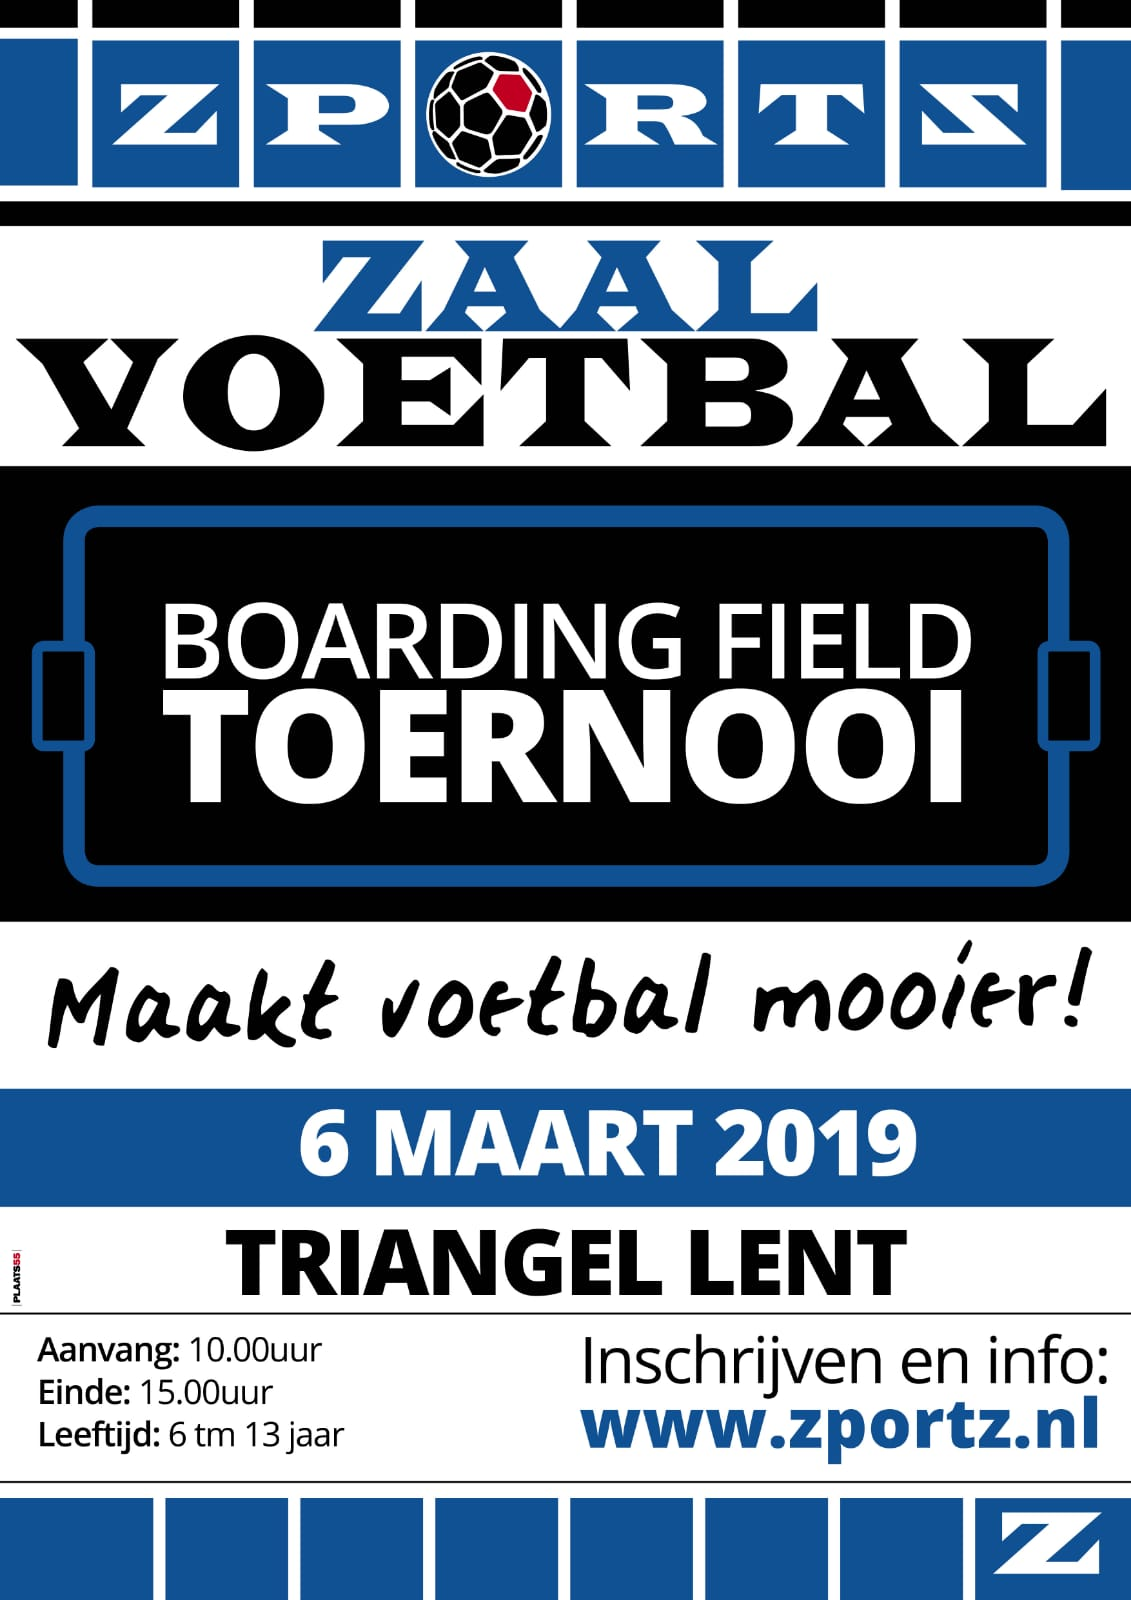 Boarding field toernooi 6 maart traingel Lent